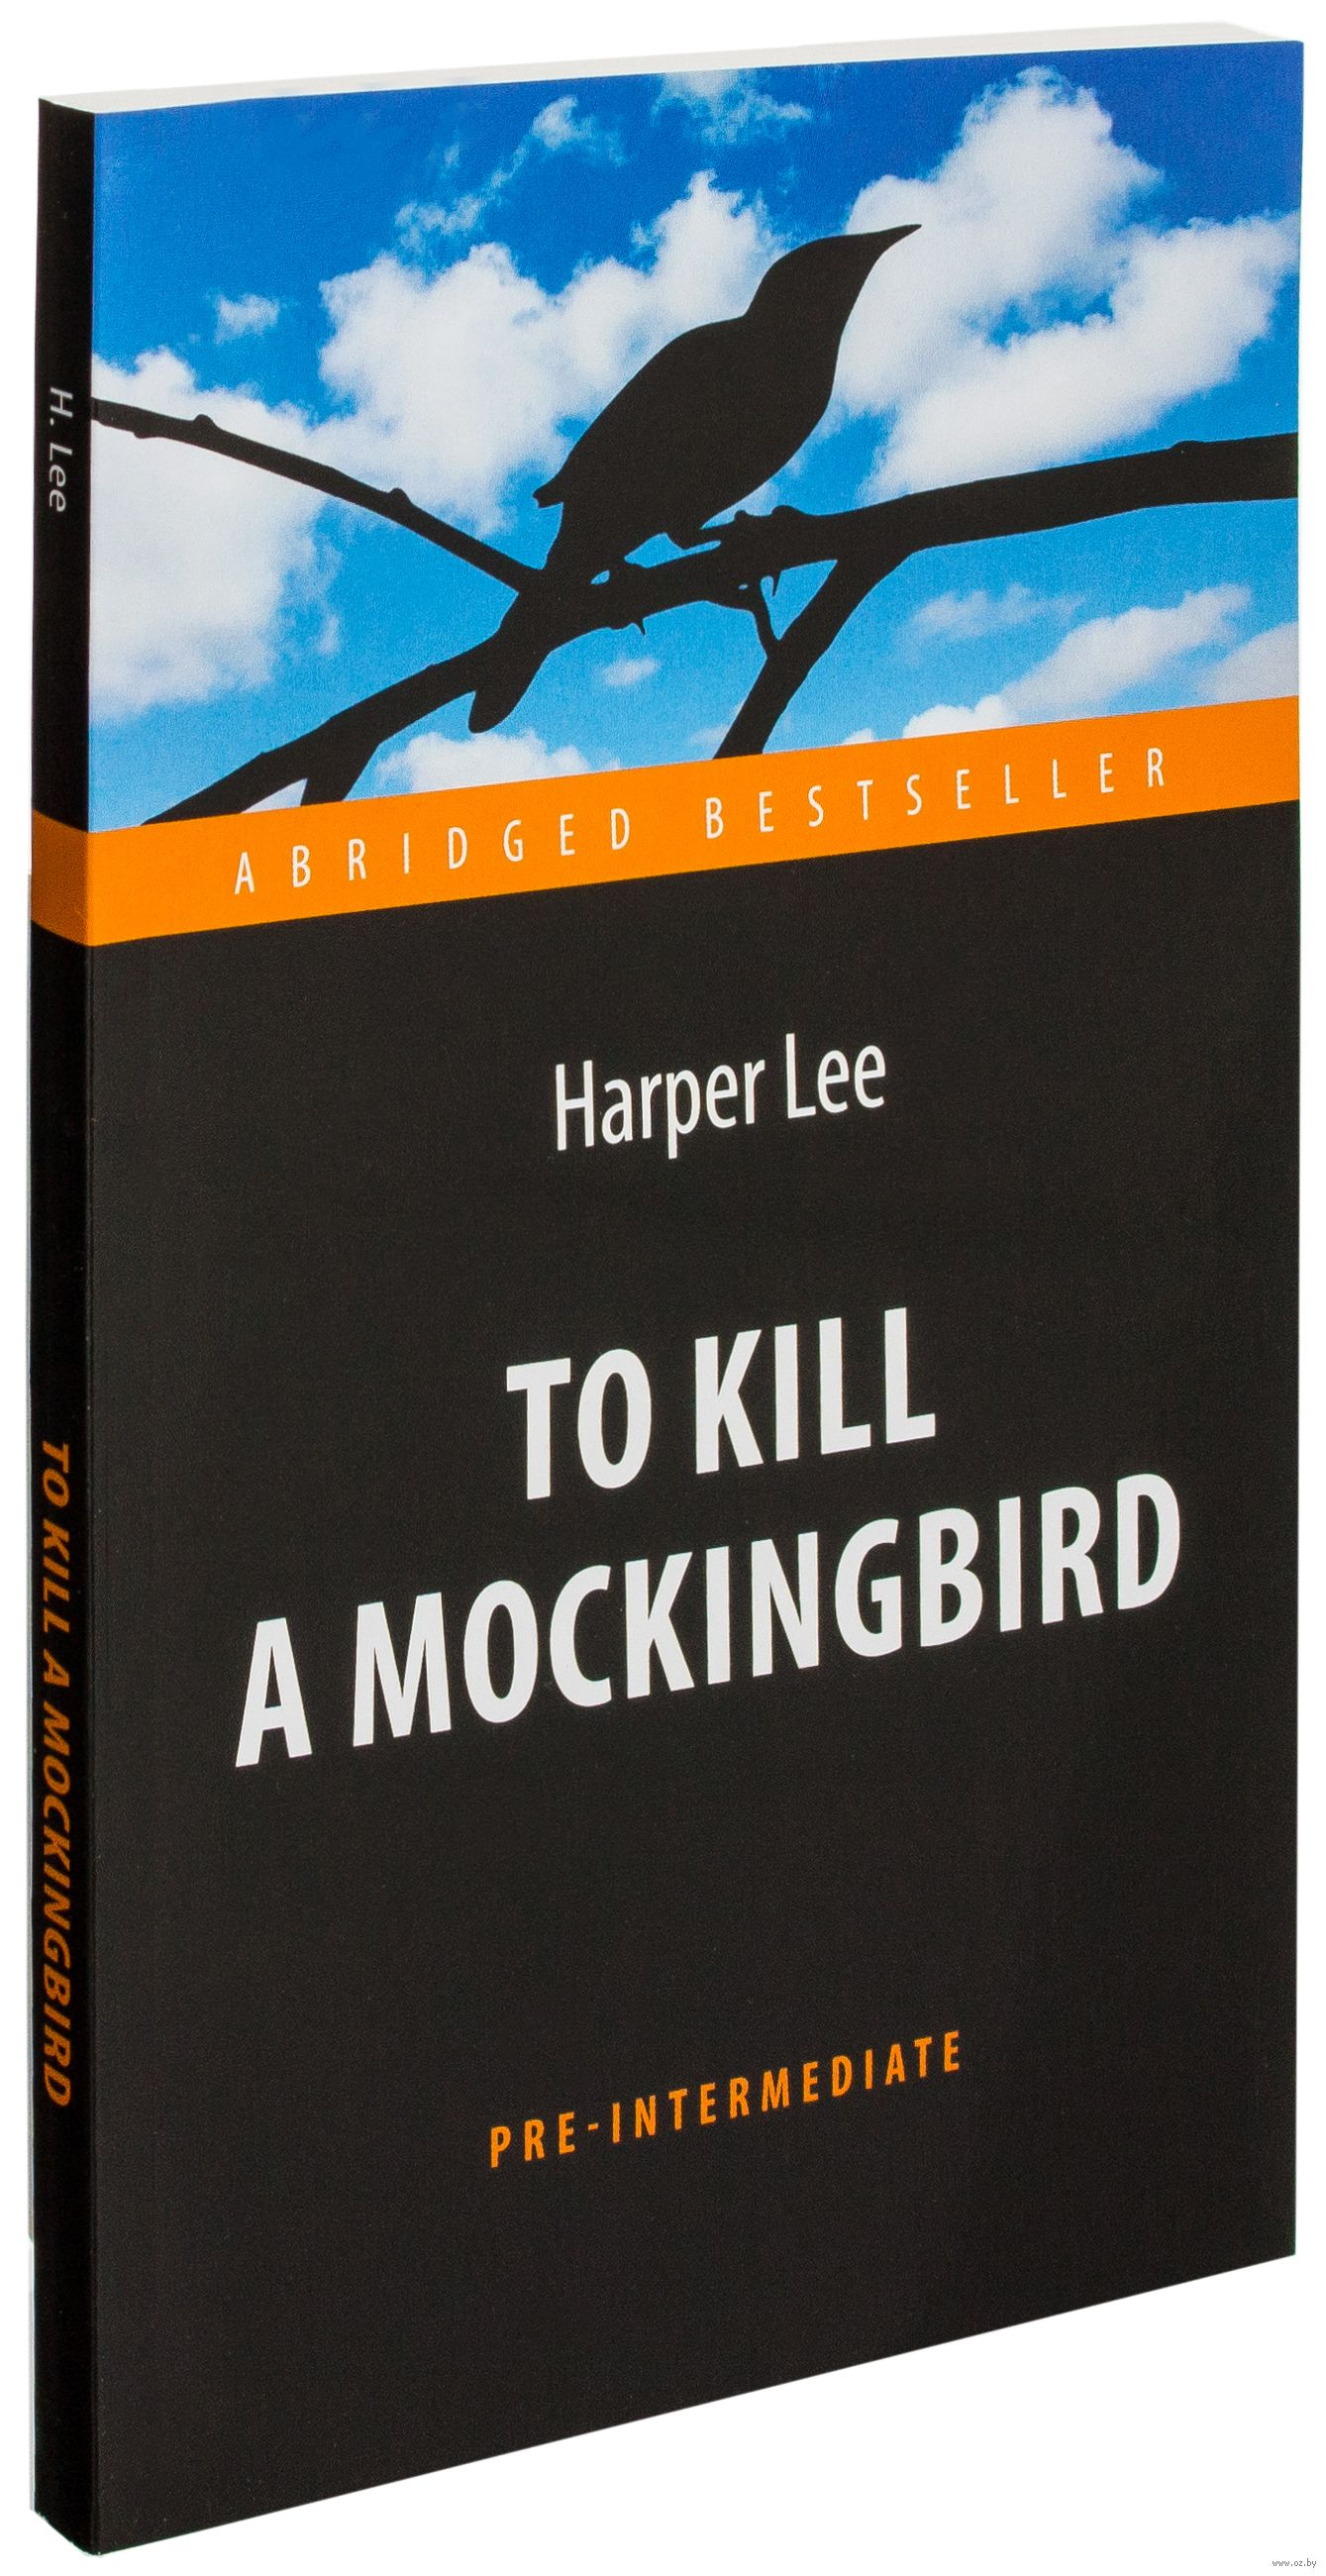 an overview of harper lees to kill a mockingbird A short summary of harper lee's to kill a mockingbird this free synopsis covers all the crucial plot points of to kill a mockingbird.